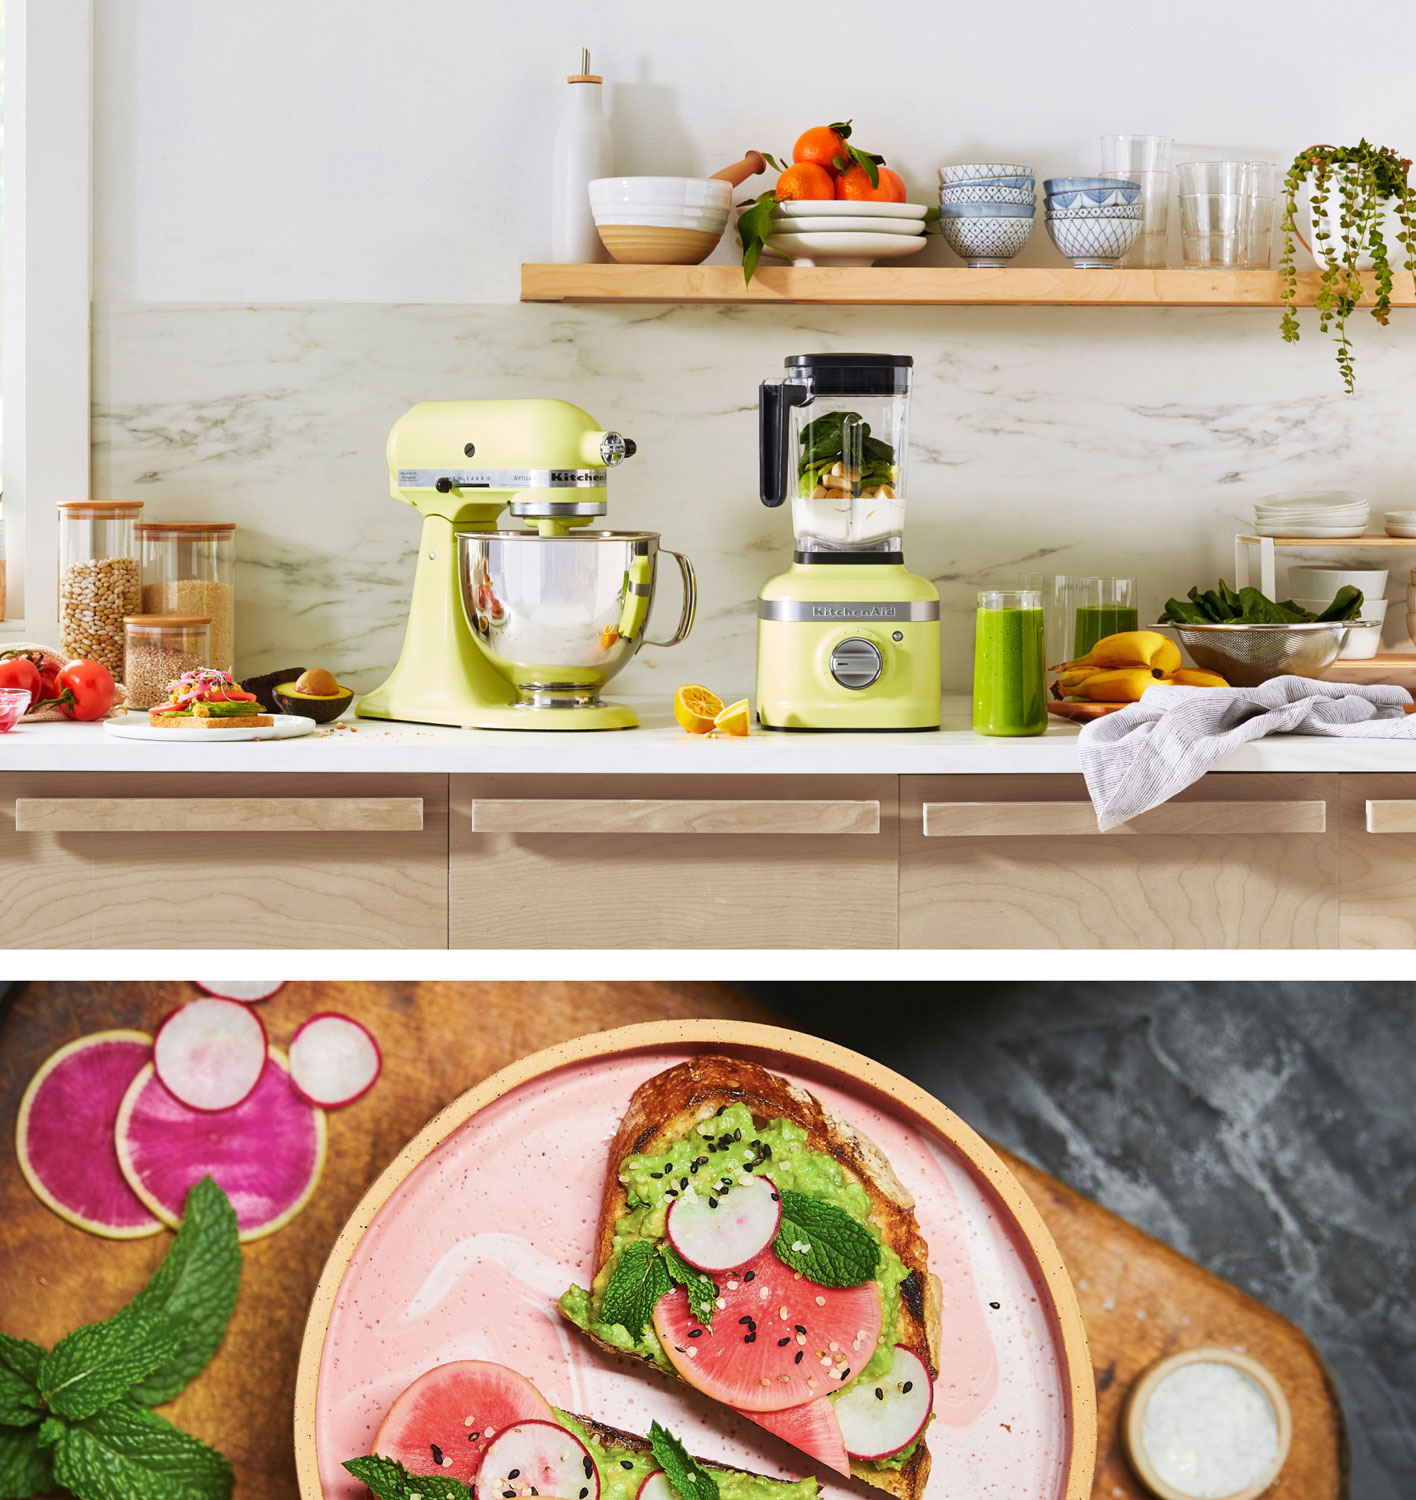 A Stand Mixer and Blender in Kyoto Glow paired with a plate of decadent avocado toast.